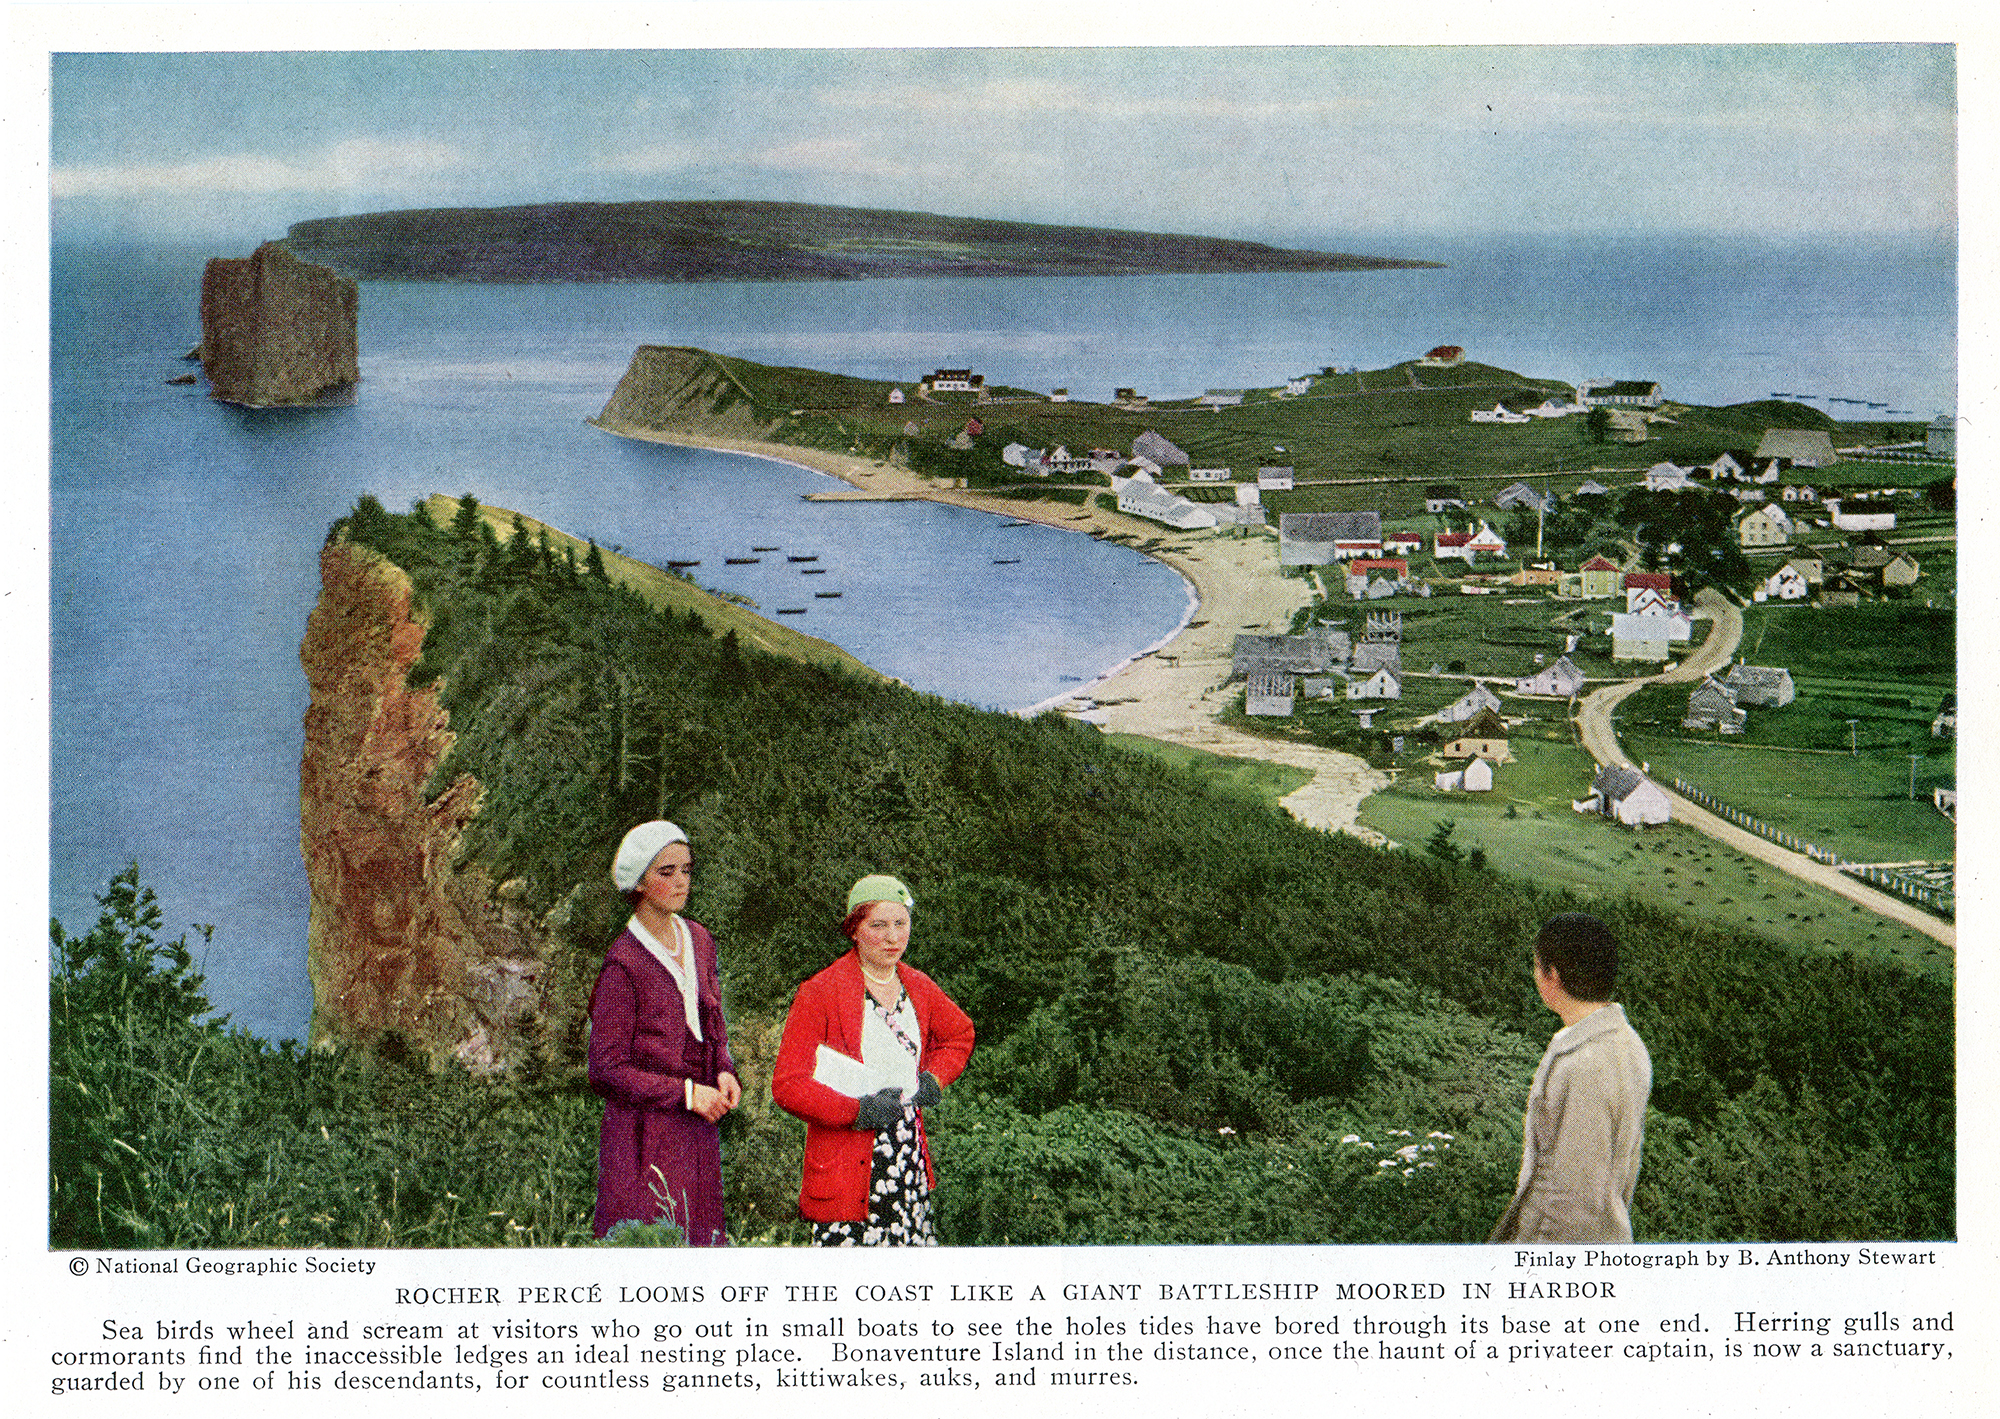 The photograph was taken from a point of view that allows us to see the village of Percé in the 1930s and the dirt road leading to it. There are some boats near the shoreline and in the distance the Percé Rock and Bonaventure Island. In the foreground, two women look in our direction and a third person admires the landscape.